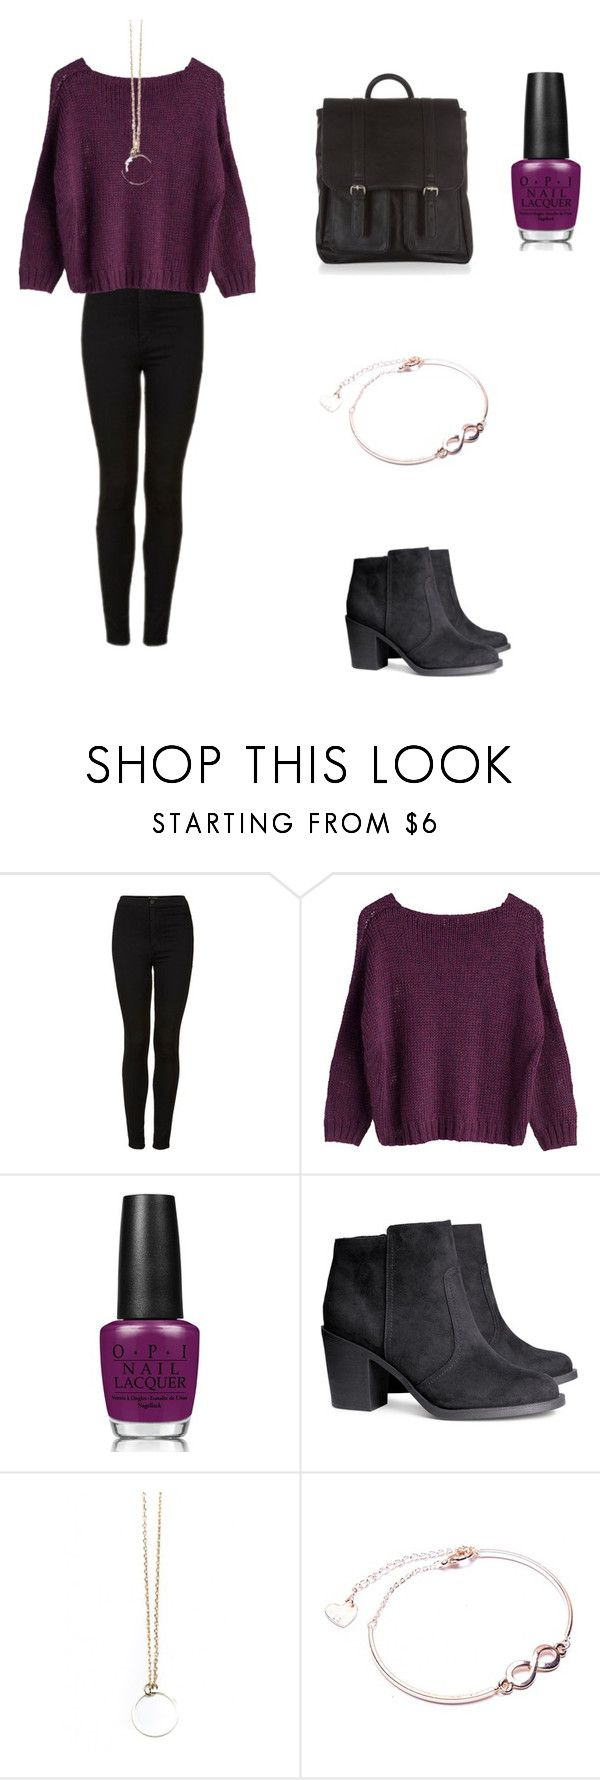 """""""Allison Argent Outfit"""" by zoegeorgiou2001 on Polyvore featuring Topshop, OPI, H&M and Accessorize"""